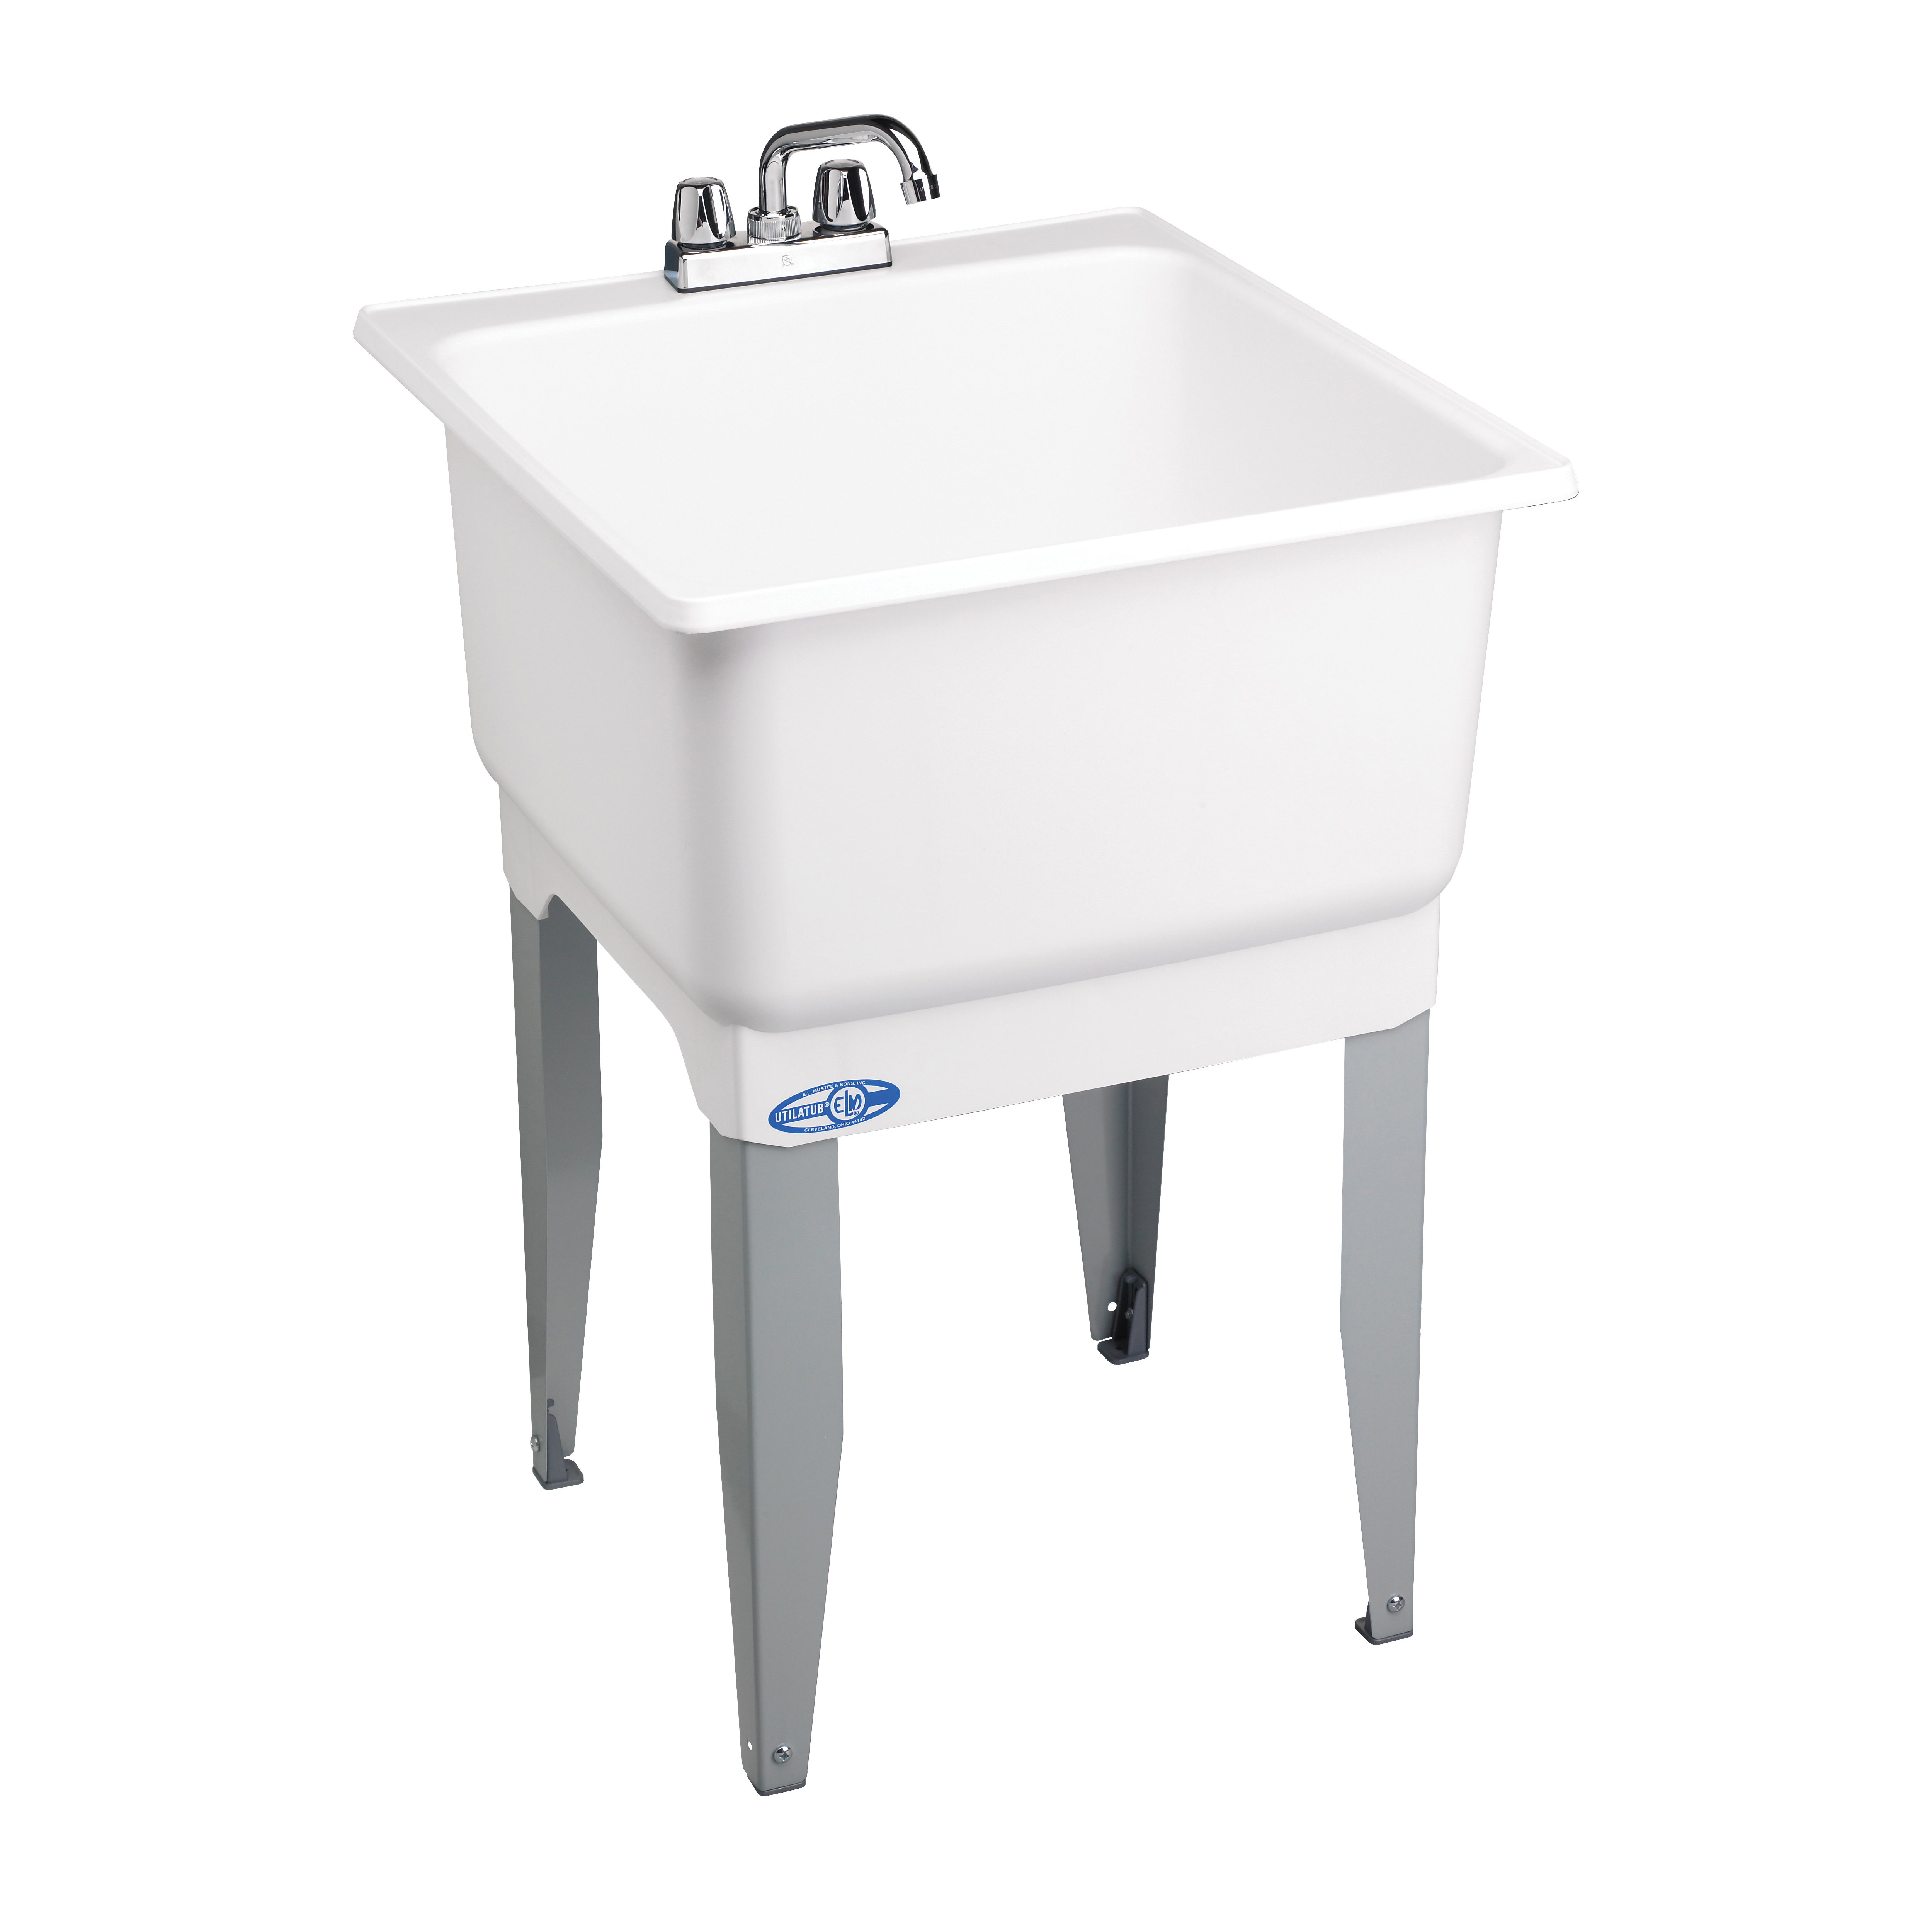 Picture of ELM UTILATUB 14CP Laundry Tub Combo Kit, 20 gal Capacity, 33 in OAH, Polypropylene, White, Floor Mounting, 1-Bowl